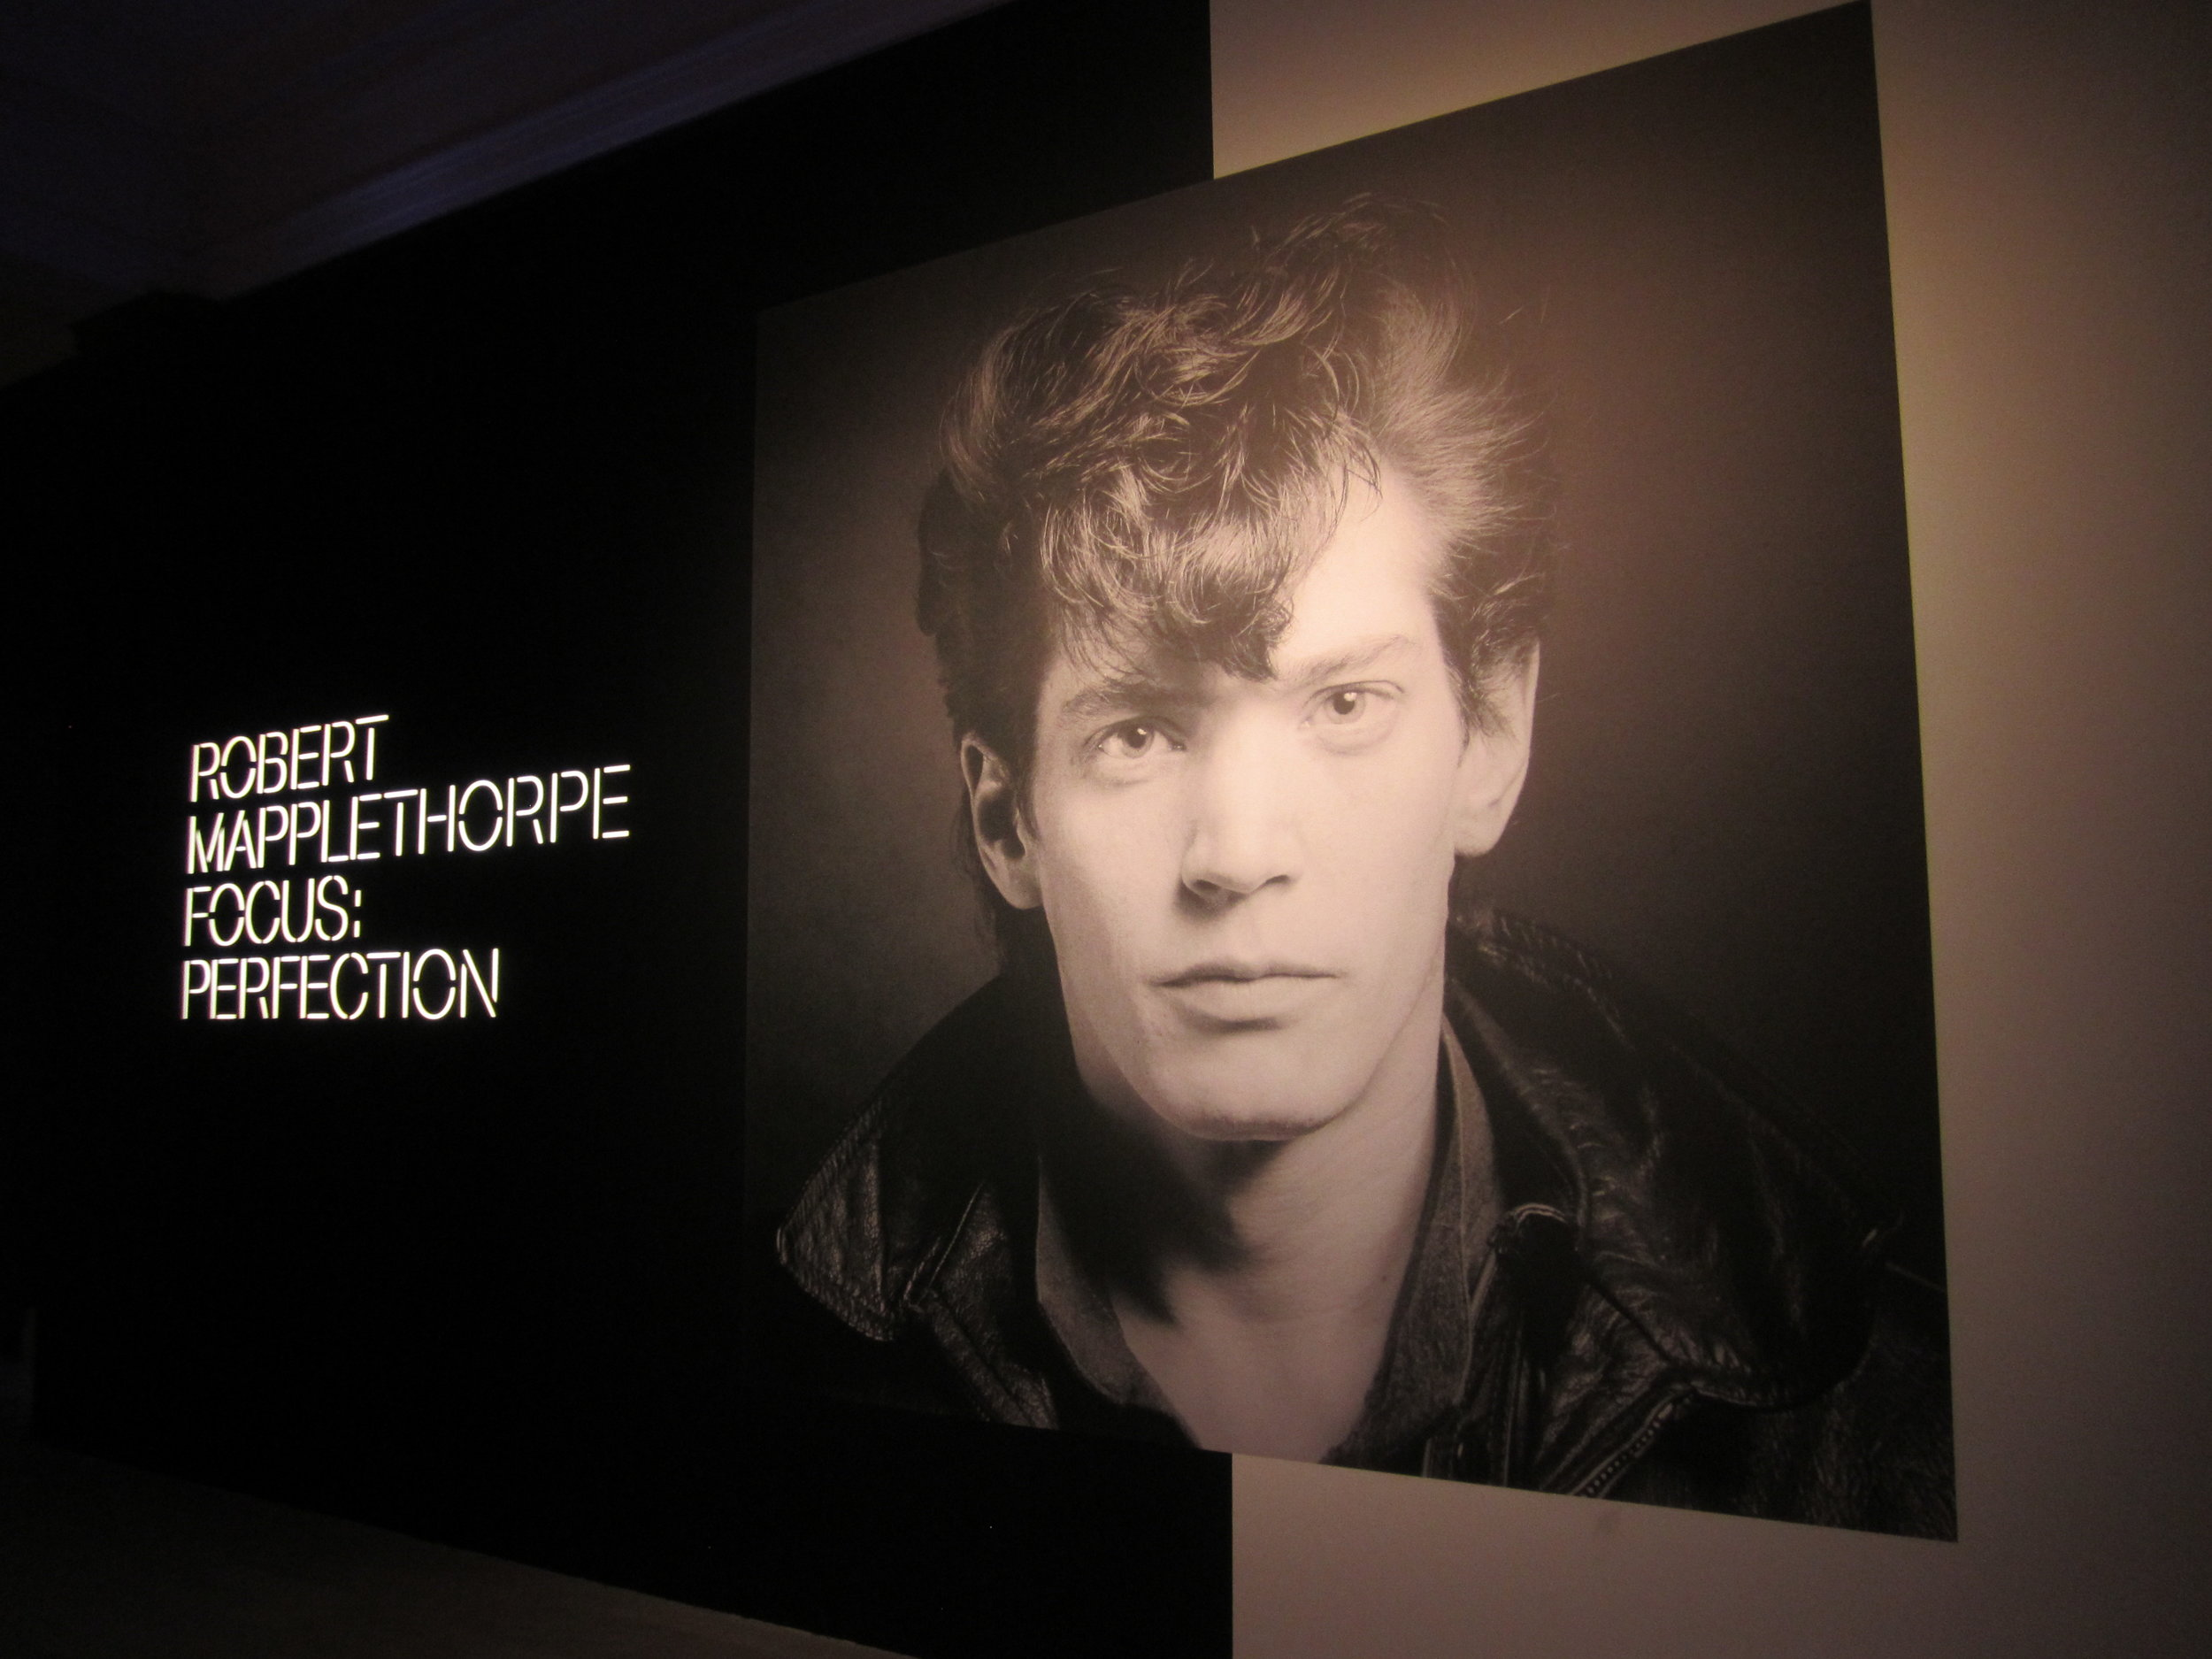 from  Robert Mapplethorpe Focus: Perfection  at the MMFA